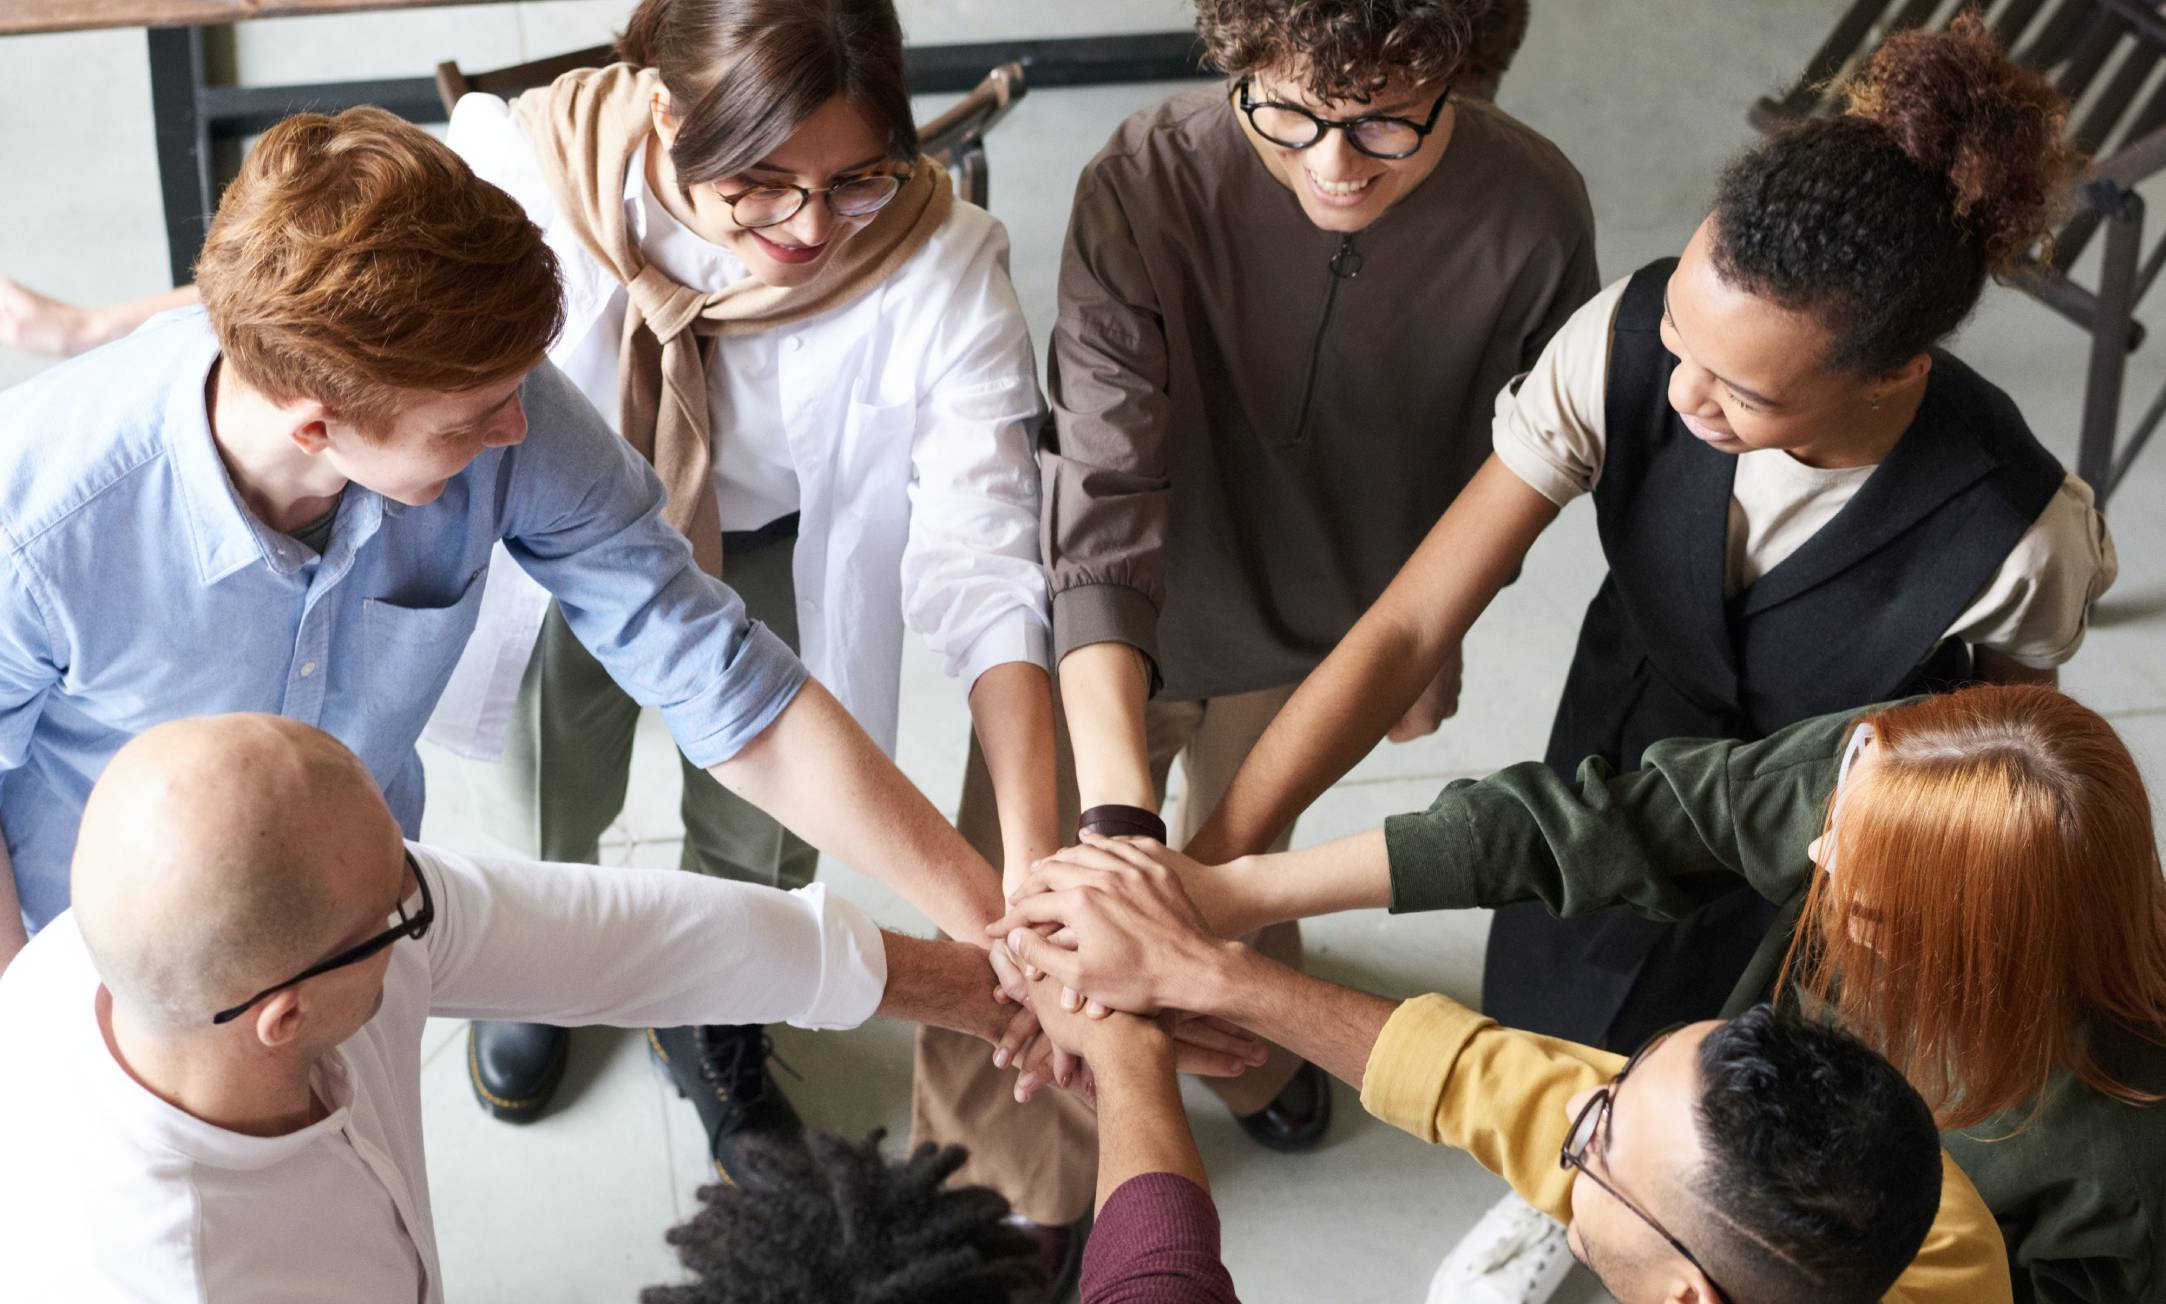 What makes INTECH's company culture one of the best